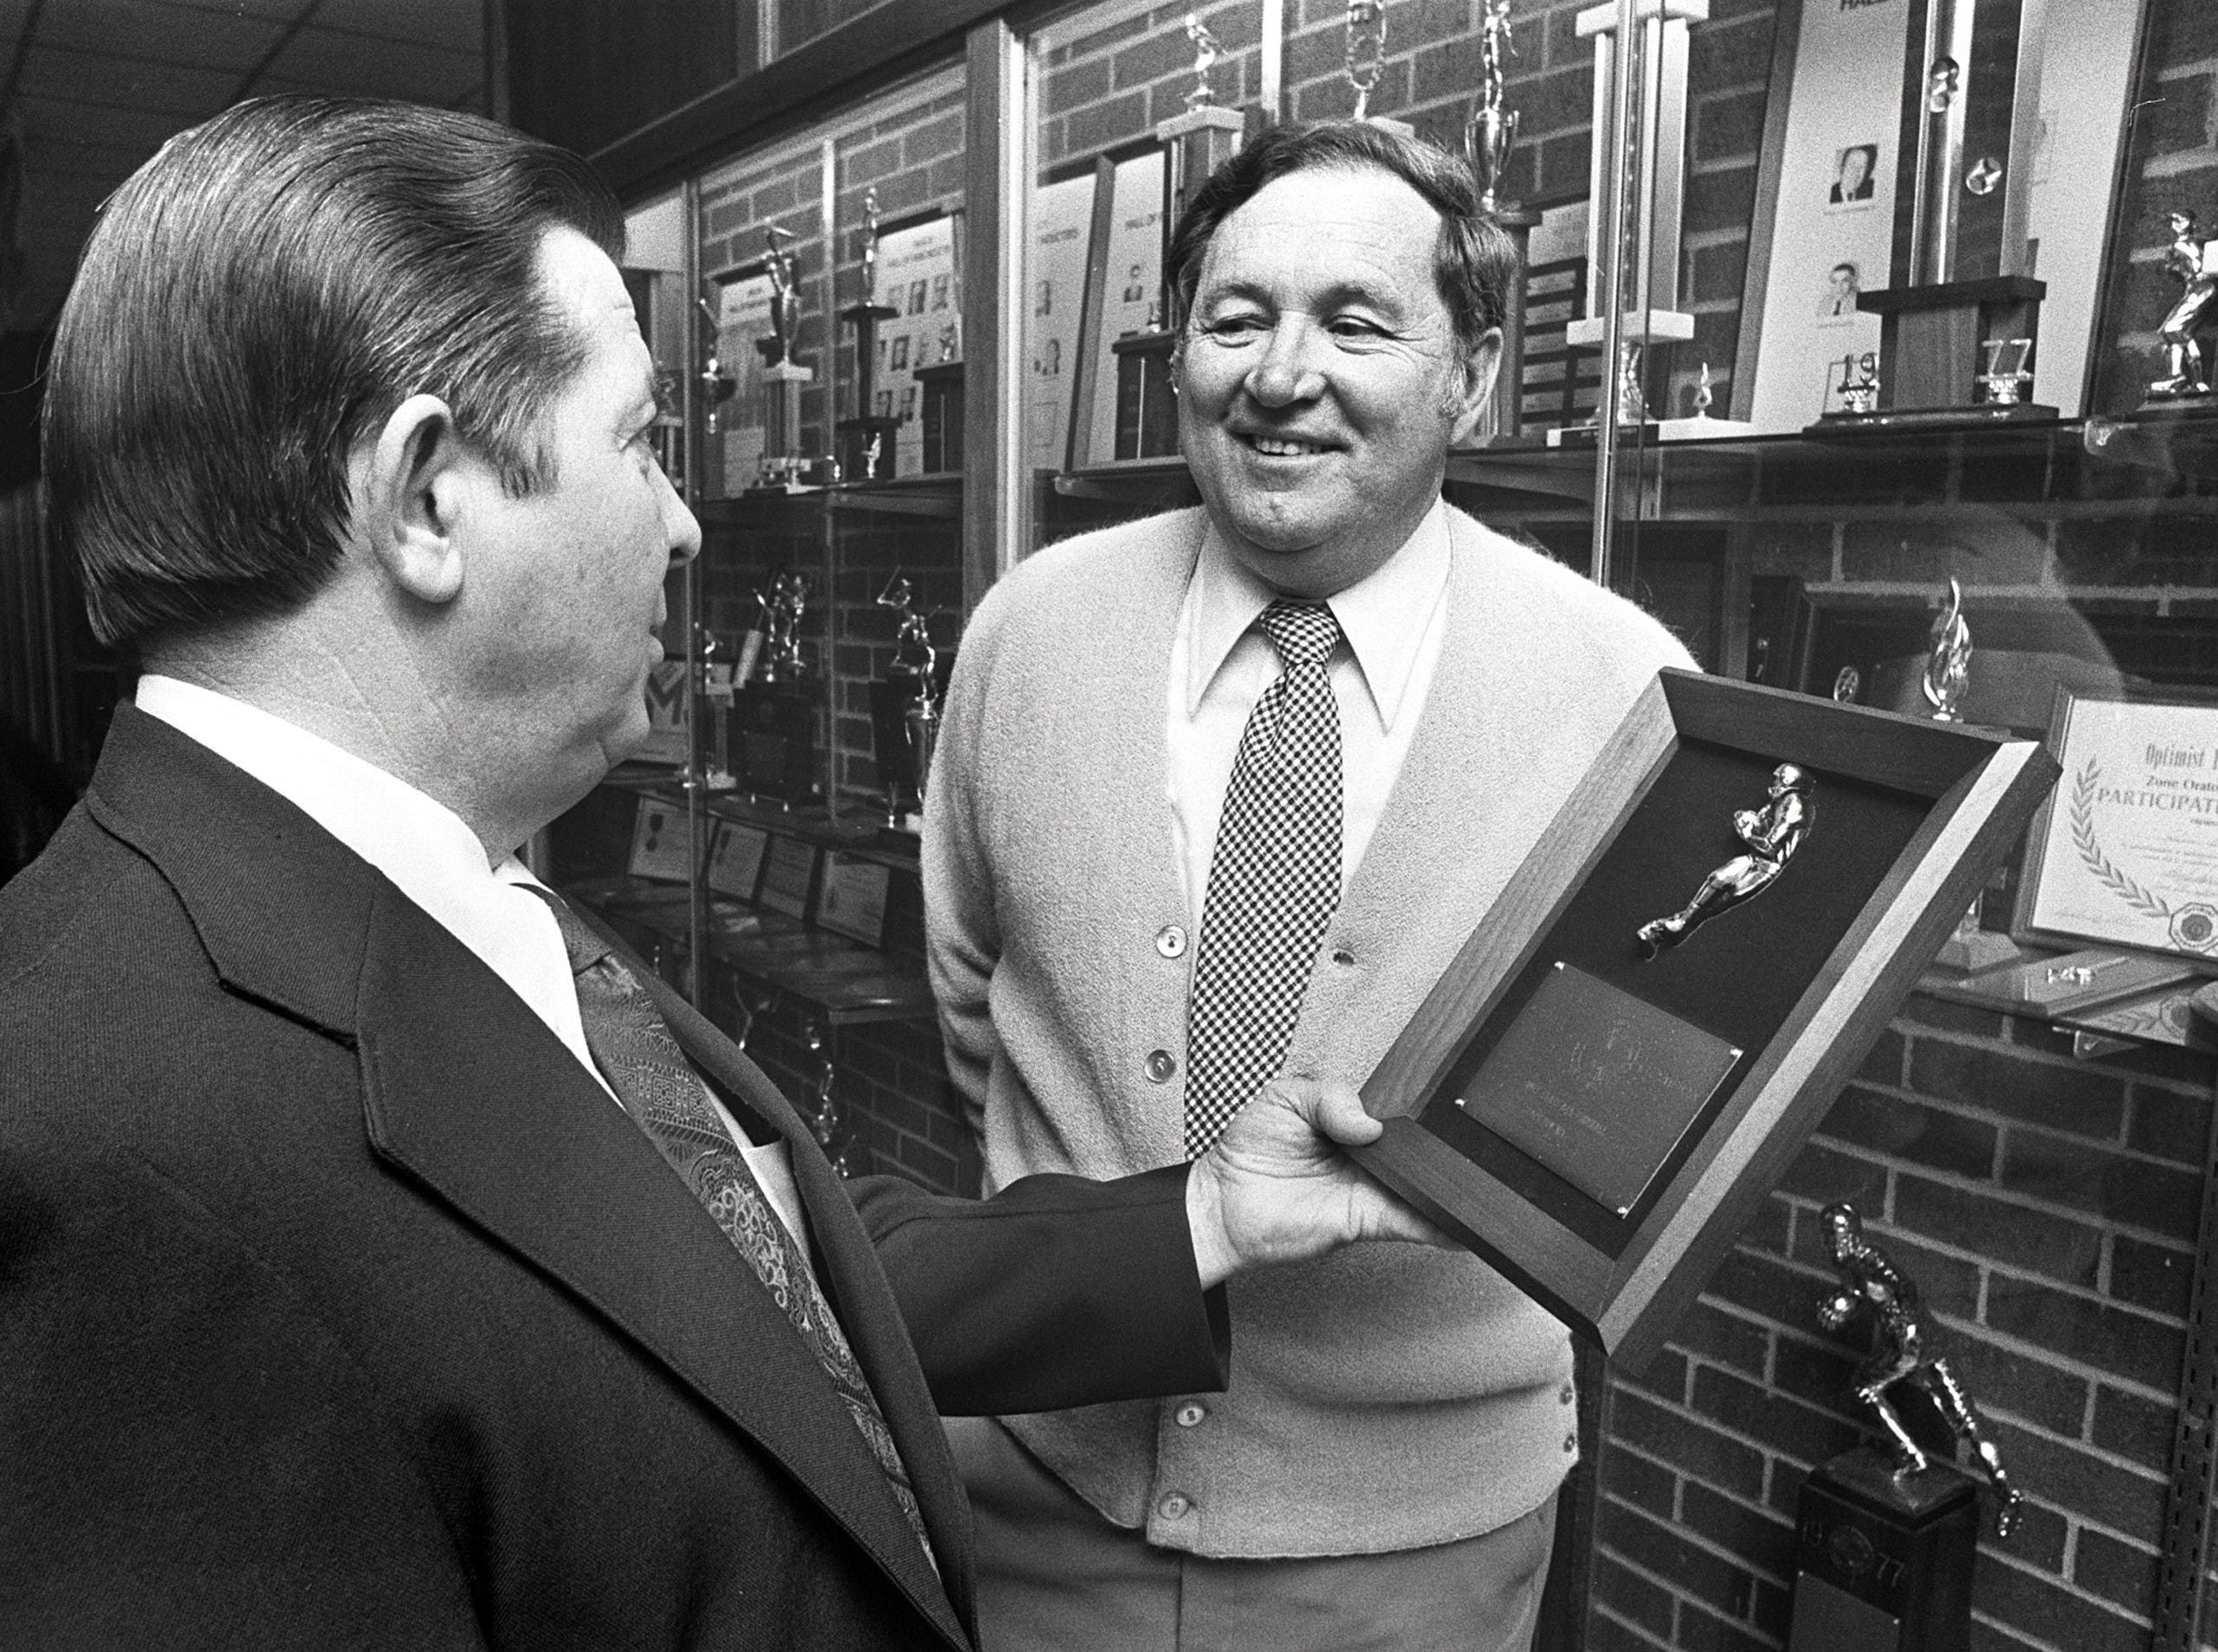 Gil Gideon (left), executive secretary of the Tennessee Secondary Schools Athletic Association (TSSAA), presented Christian Brothers High School football coach Tom Nix with a plaque on March 29, 1978, for CBHS' winning the Class AAA state football title in the fall of 1977. Other Memphis area coaches receiving state champion coaches plaques are Joe Branch (Bolton Class A boys basketball), Dorsey Sims (Melrose Class AAA boys basketball) and Ronn Rubio (Harding cross country).